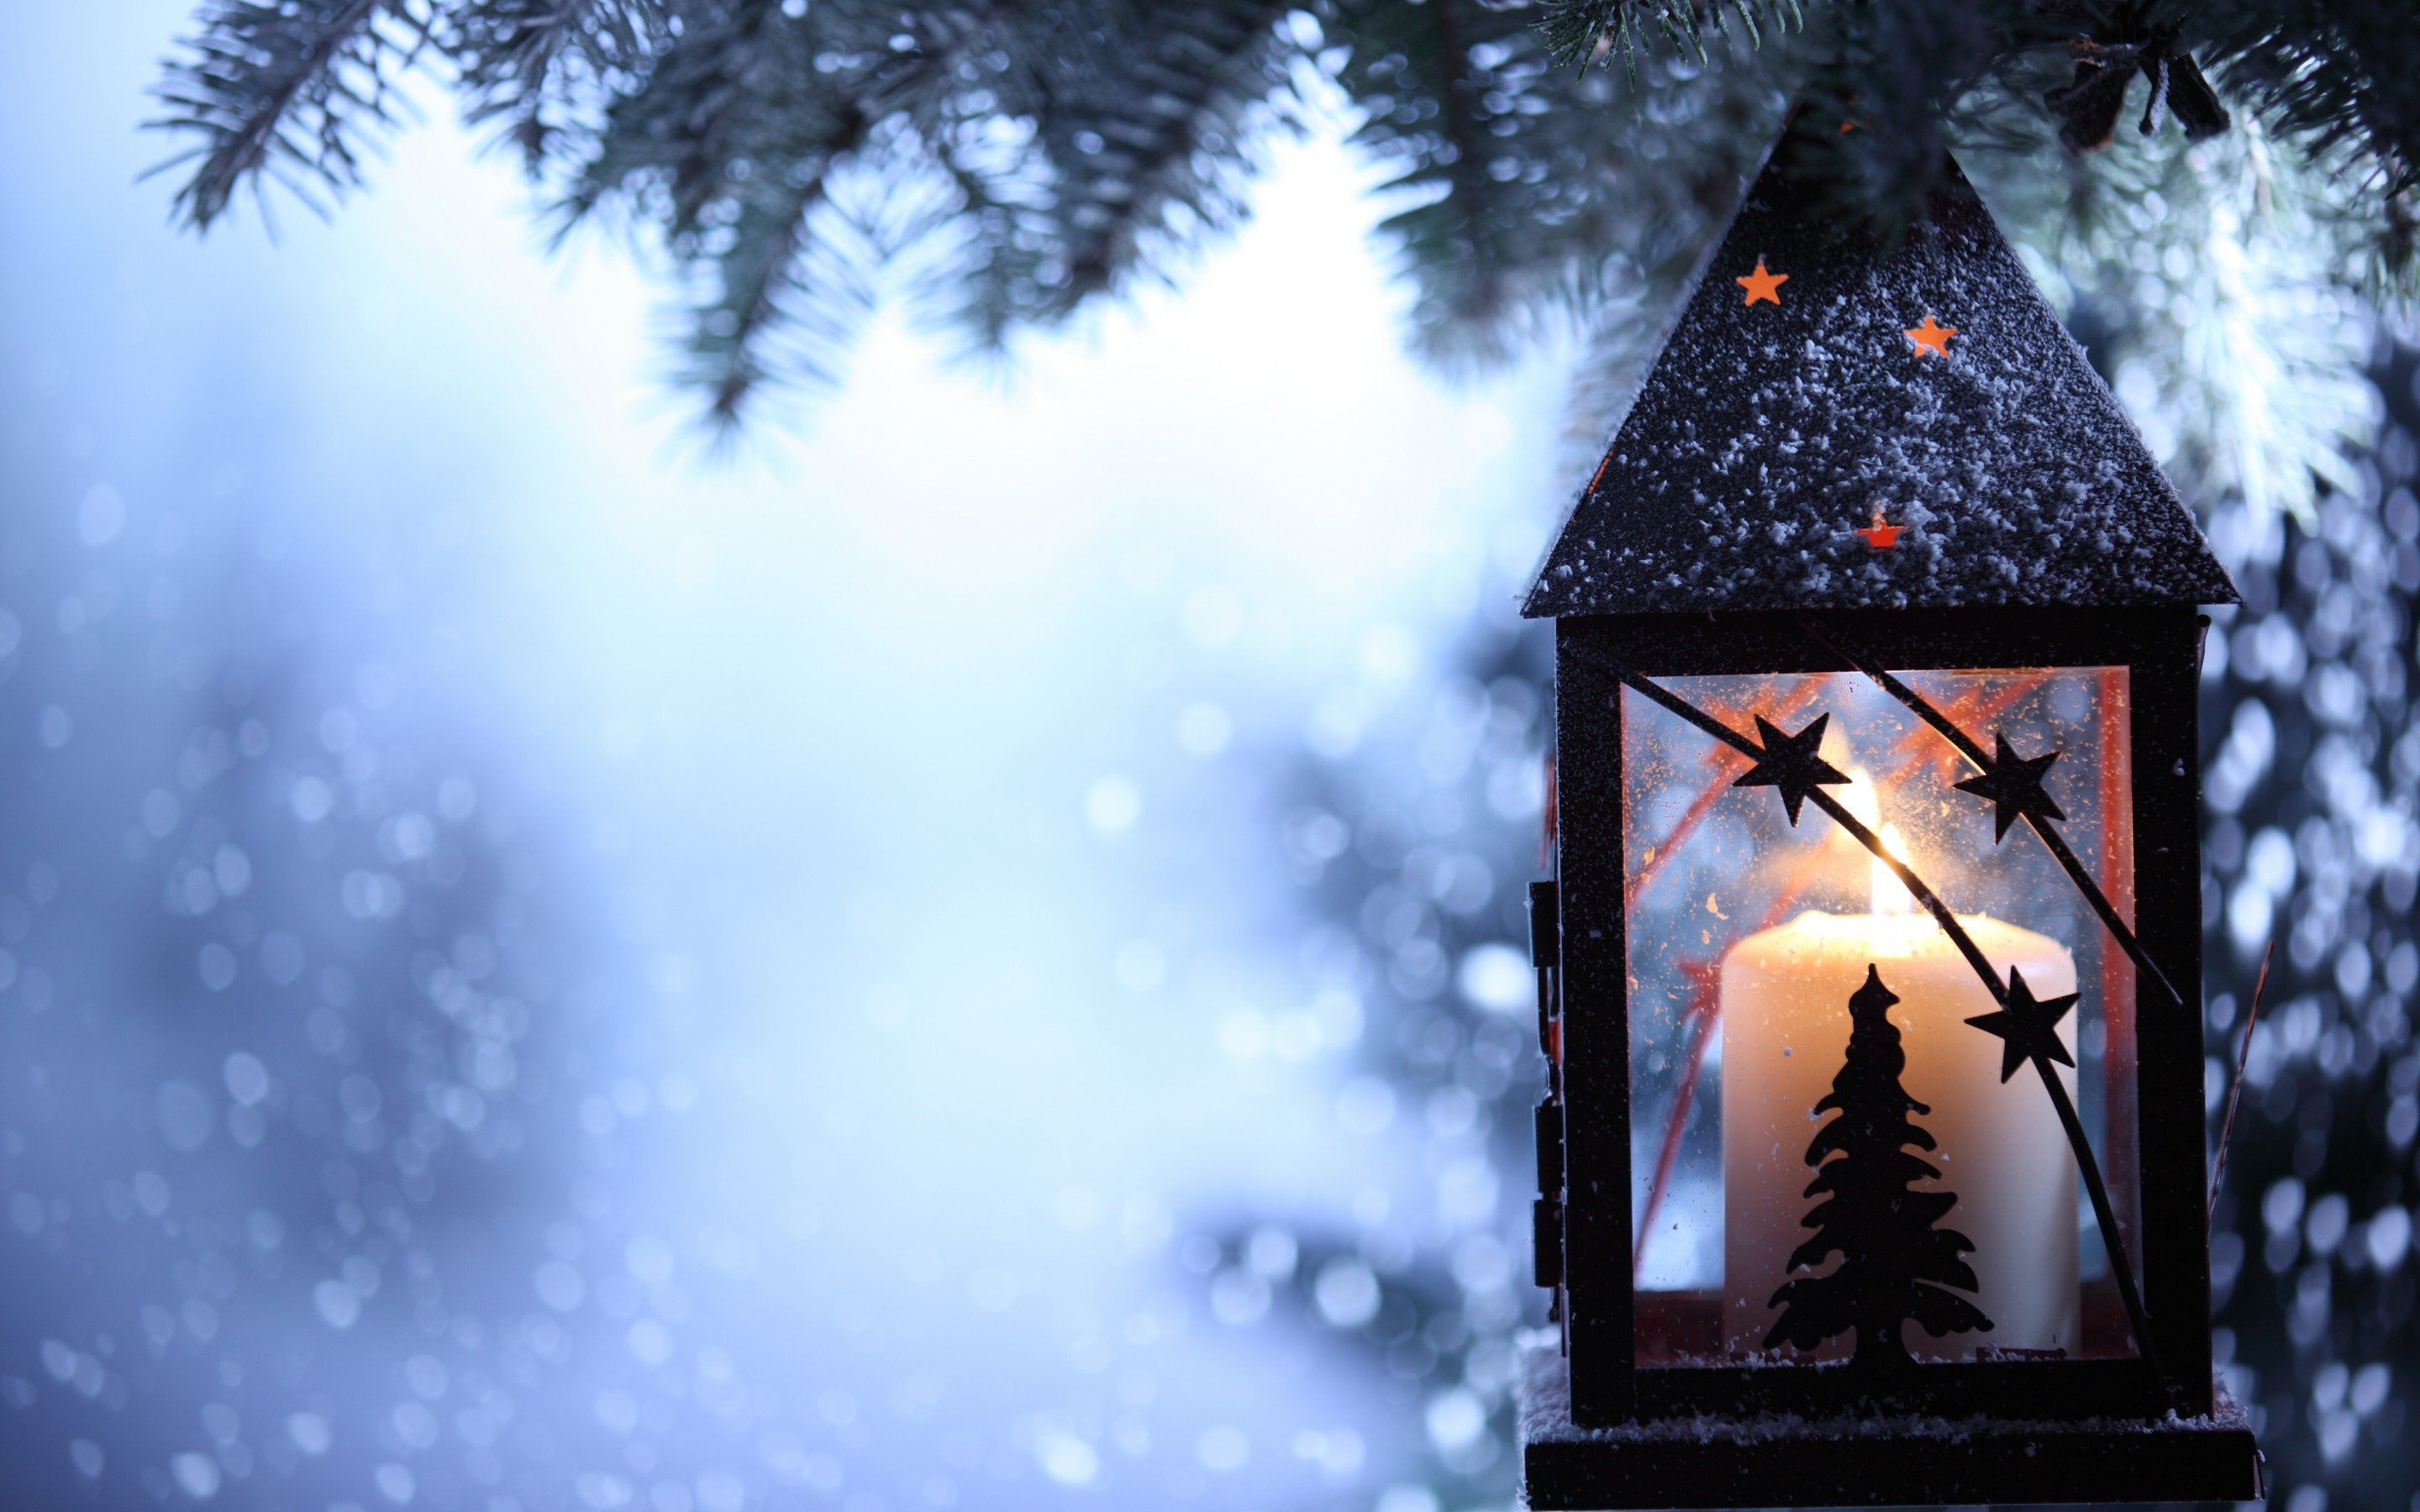 Christmas Candle HD Wallpaper 2880x1800